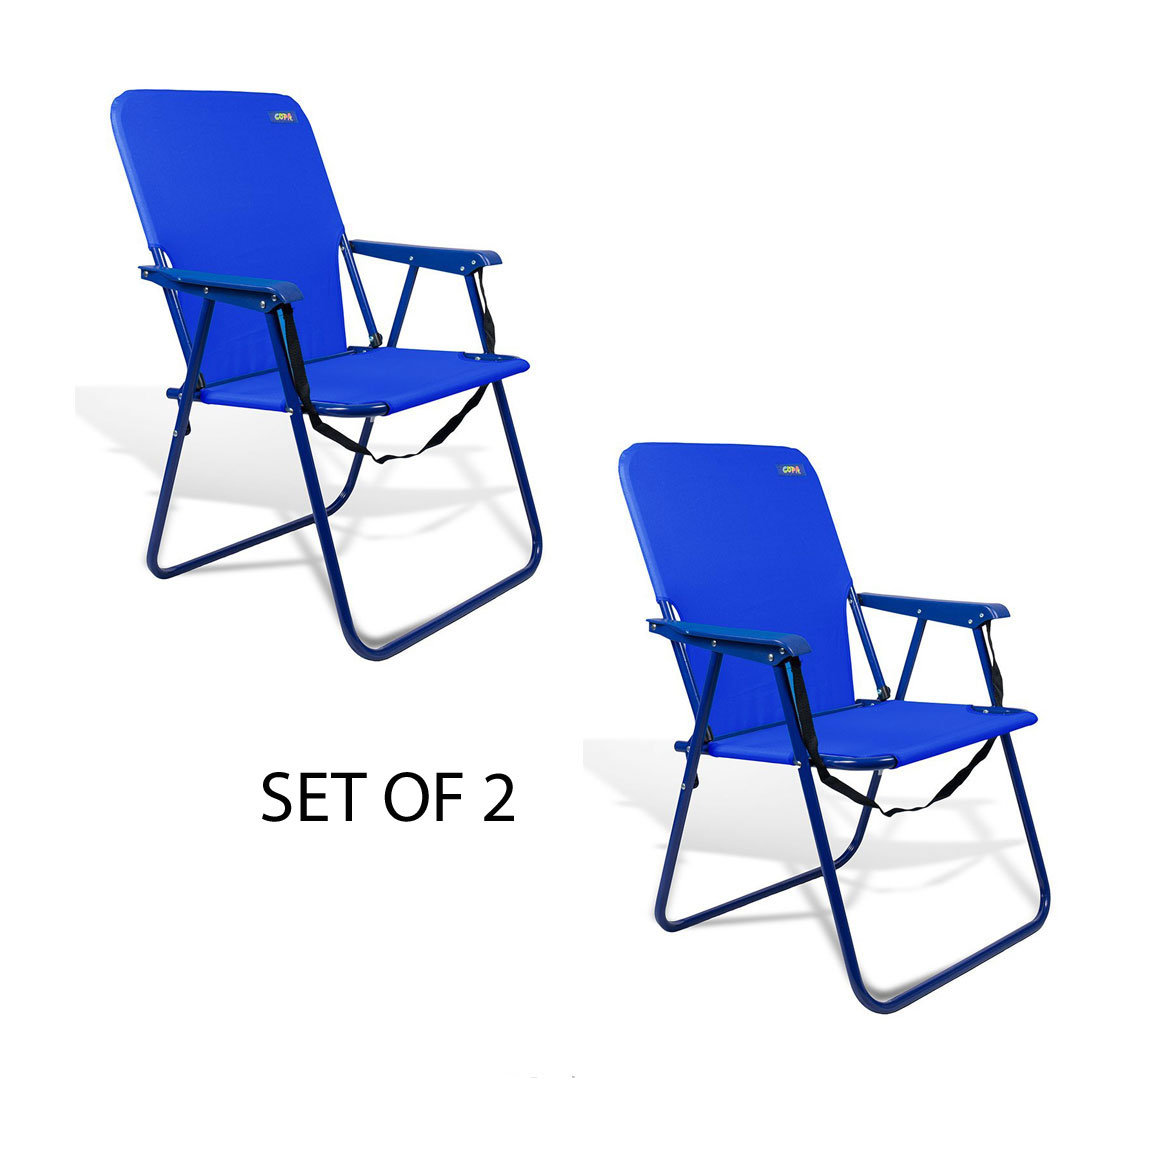 15 inch High Seat Steel Camping Beach Backpack Chair - Set of 2 Backpack Chairs